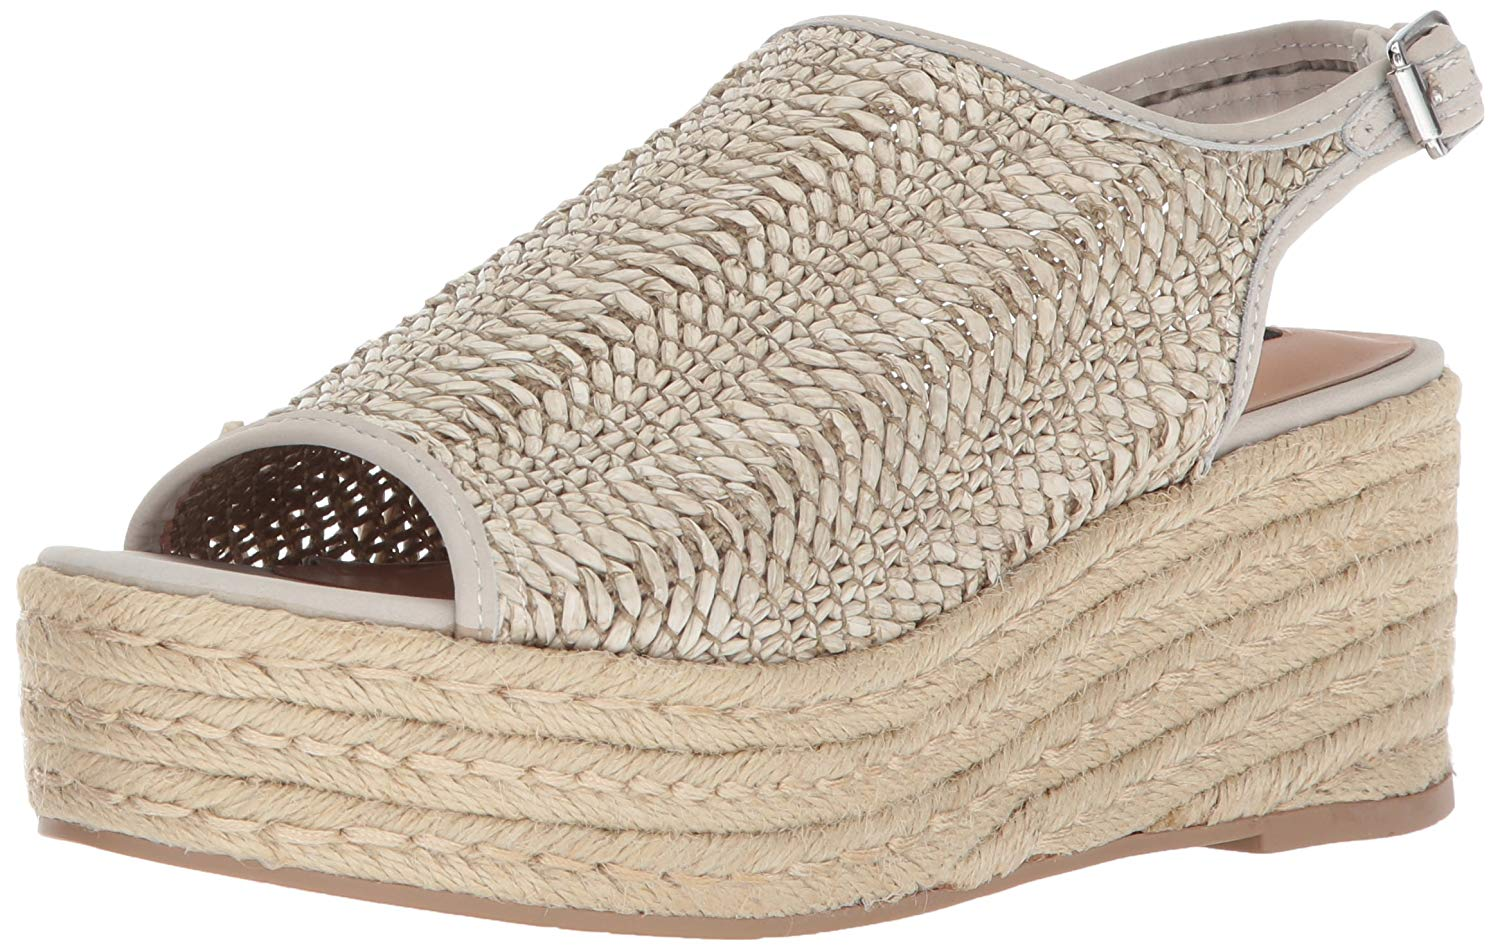 35a357cb2a4 Details about STEVEN by Steve Madden Women's Courage Wedge Sandal